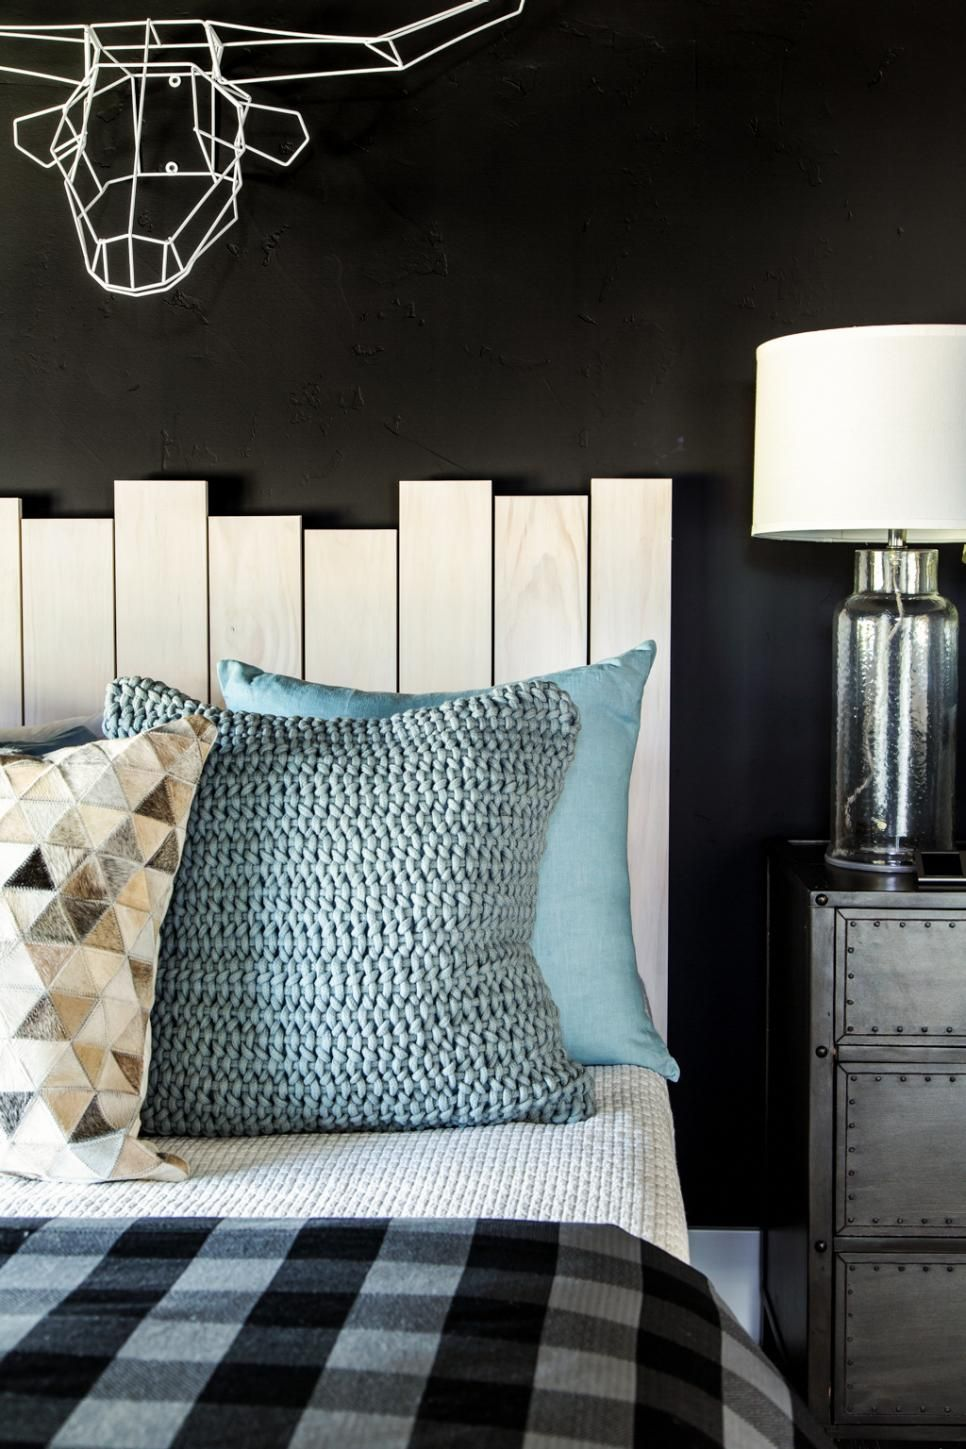 Modern Mountain Holidays At Hgtv Dream Home 2019: HGTV Dream Home 2019: Red Guest Bedroom Pictures